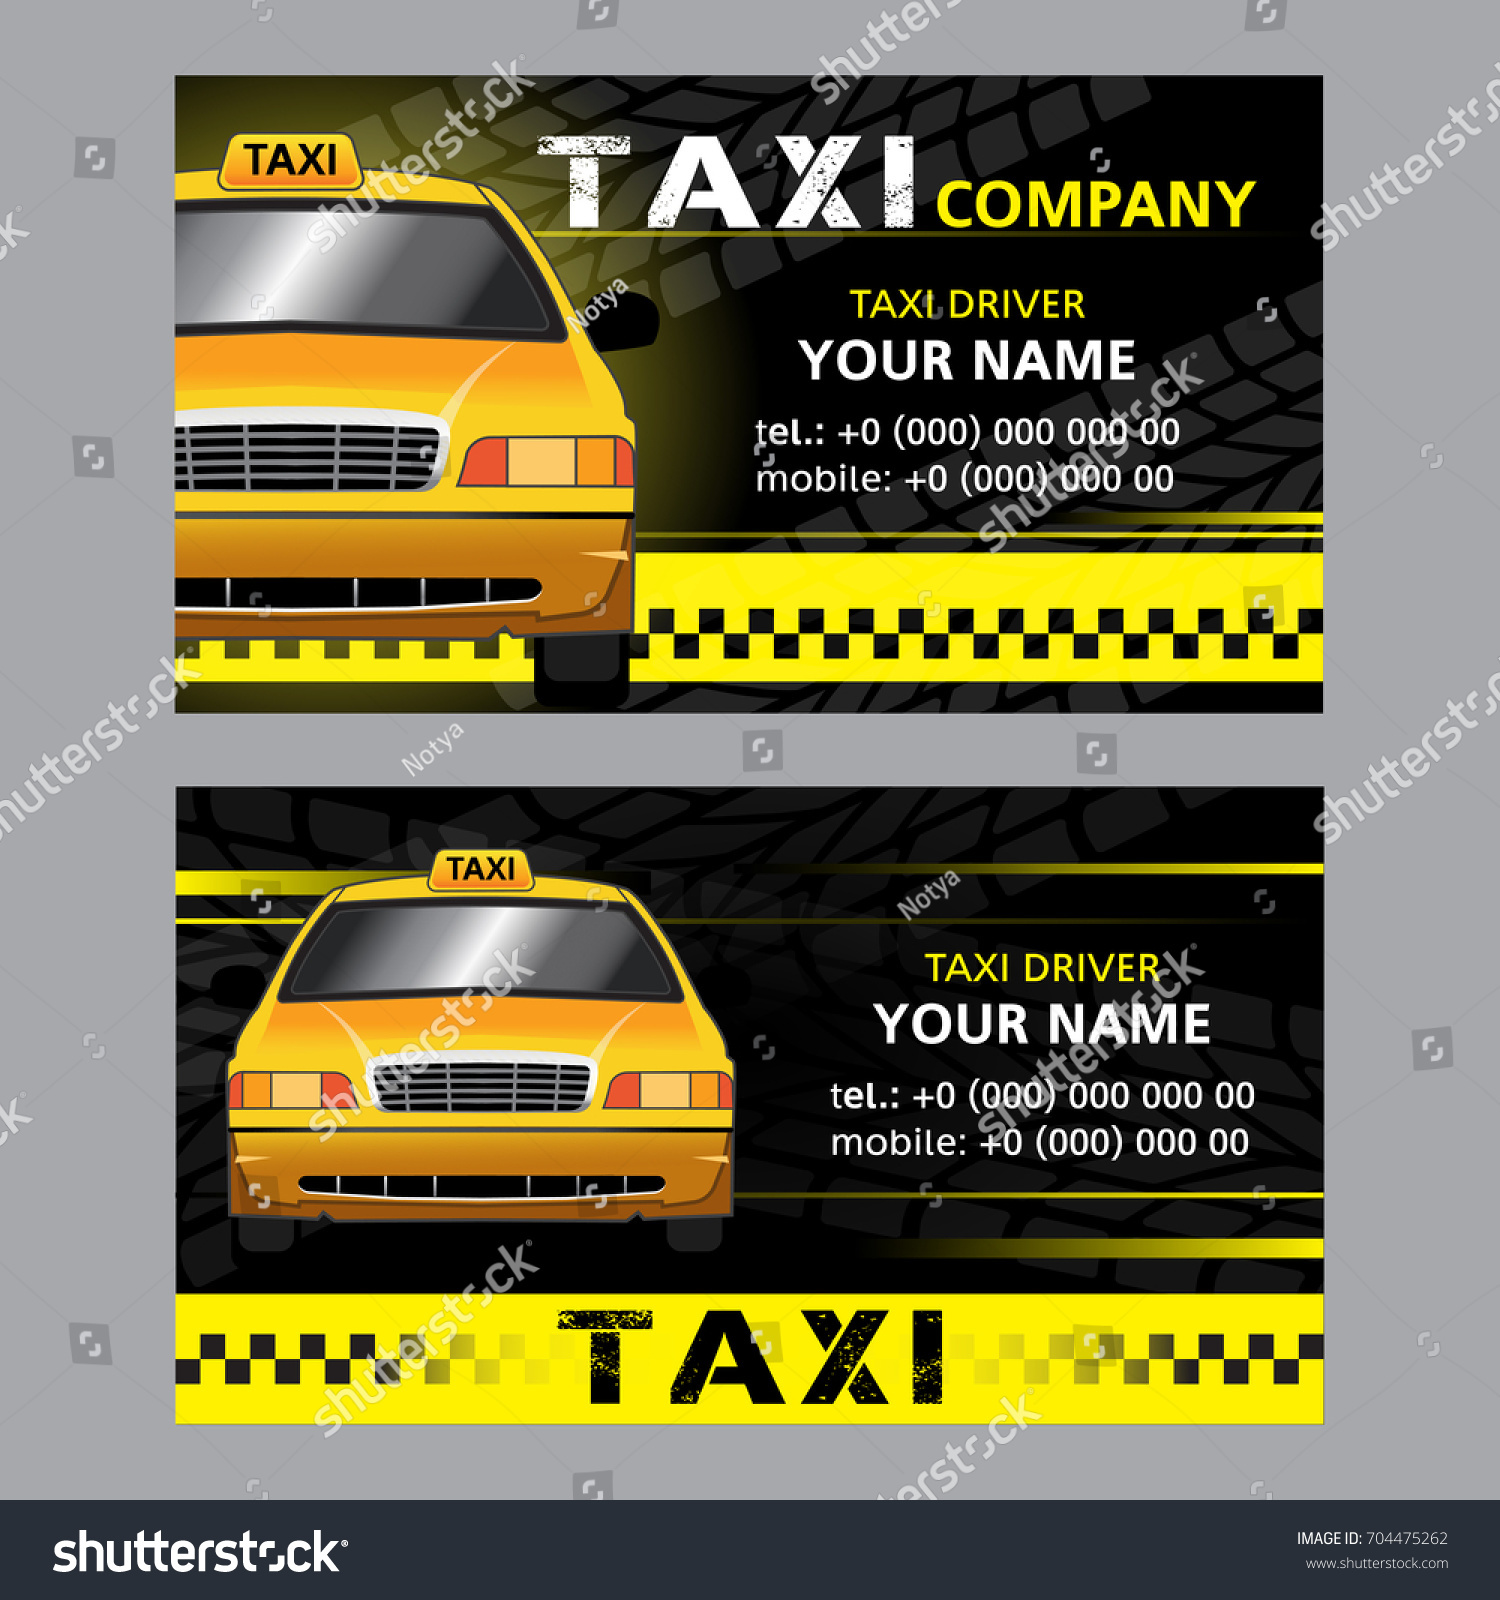 2 types of one way business cards for the taxi company - Taxi Business Cards